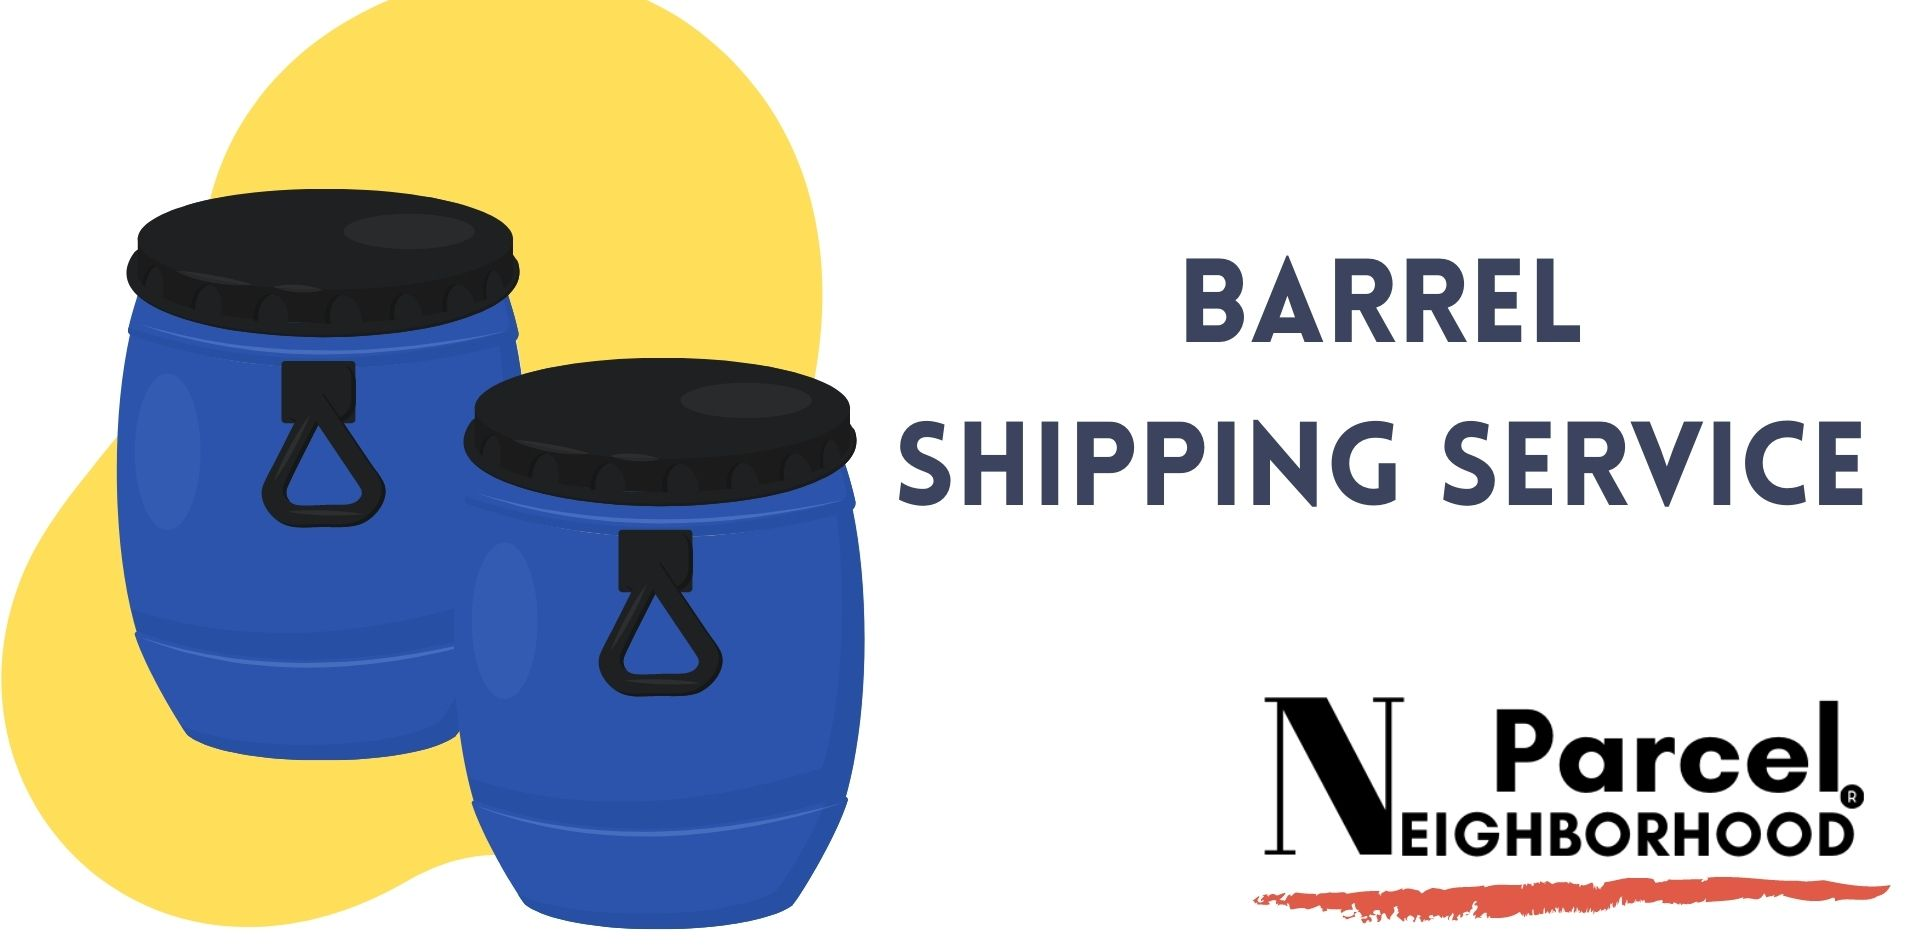 Barrel Shipping Service Company